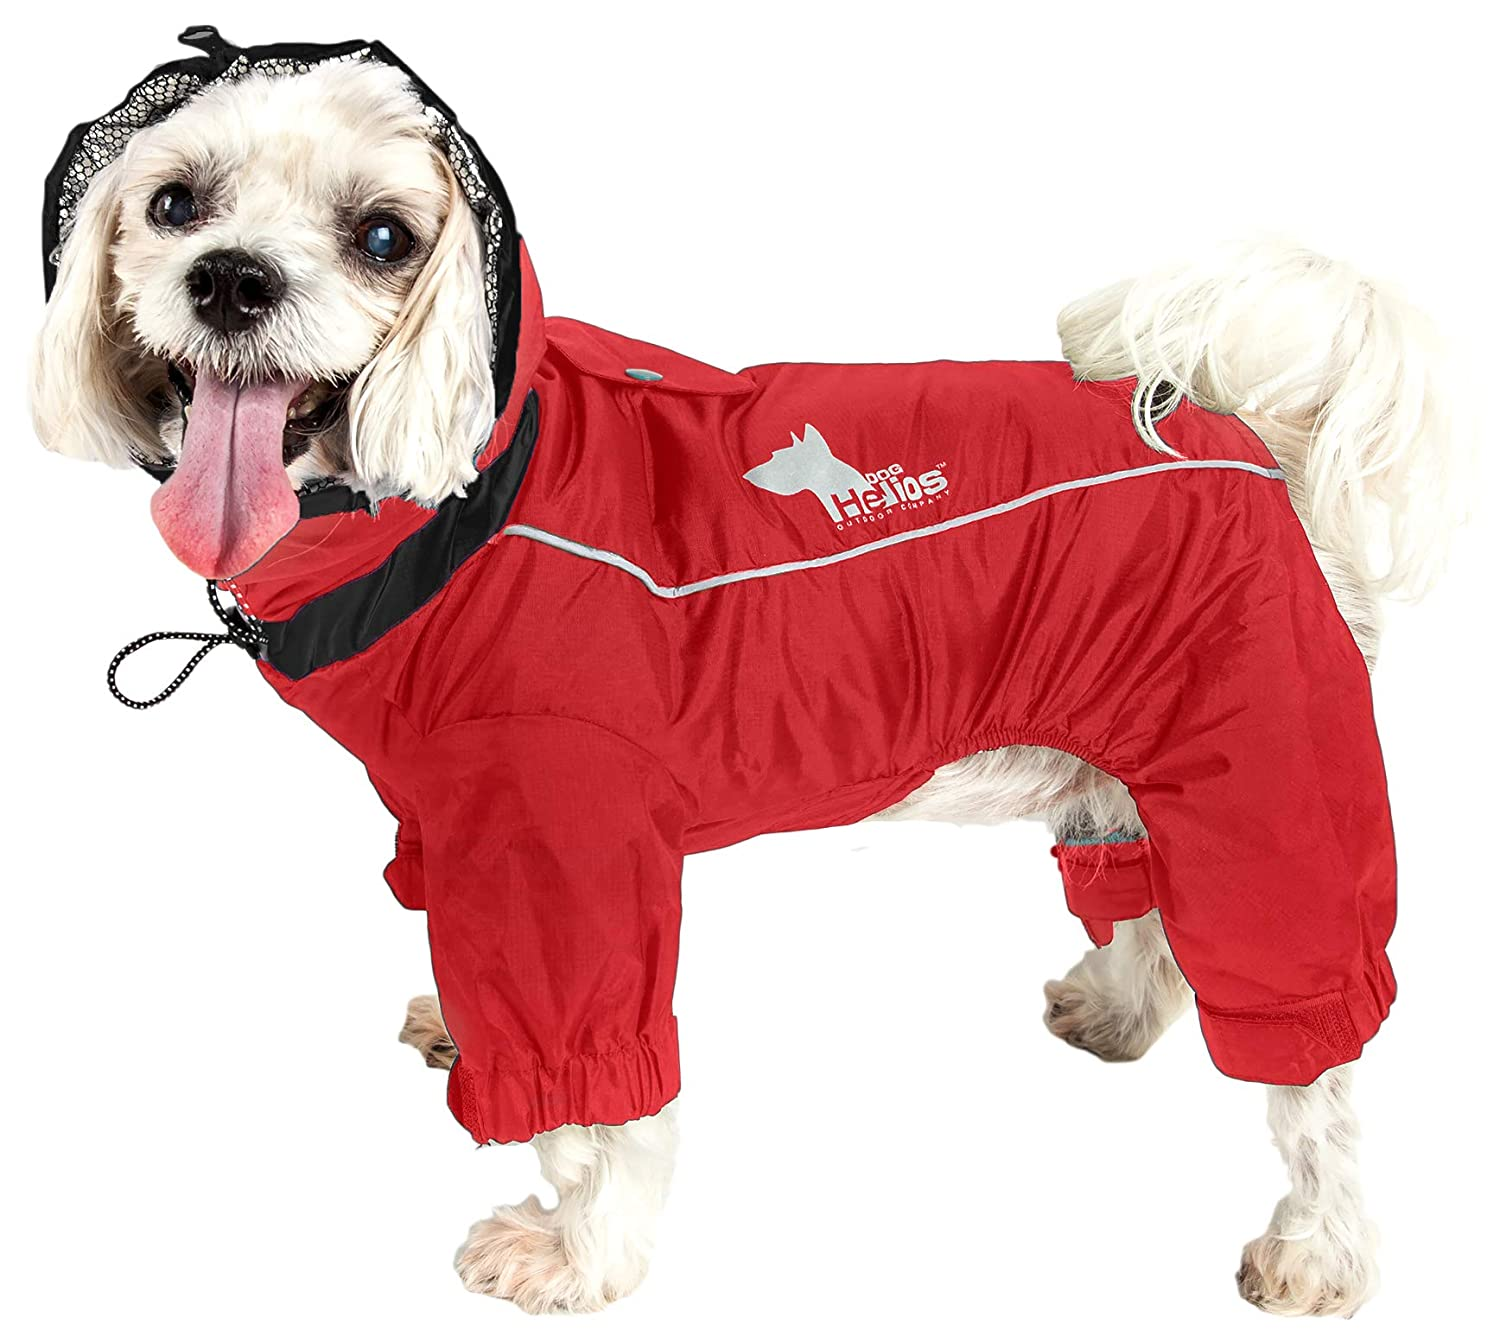 DOGHELIOS Weather-King Windproof Waterproof and Insulated Adjustable Full Bodied Pet Dog Jacket Coat w//Heat Retention Technology Red Large